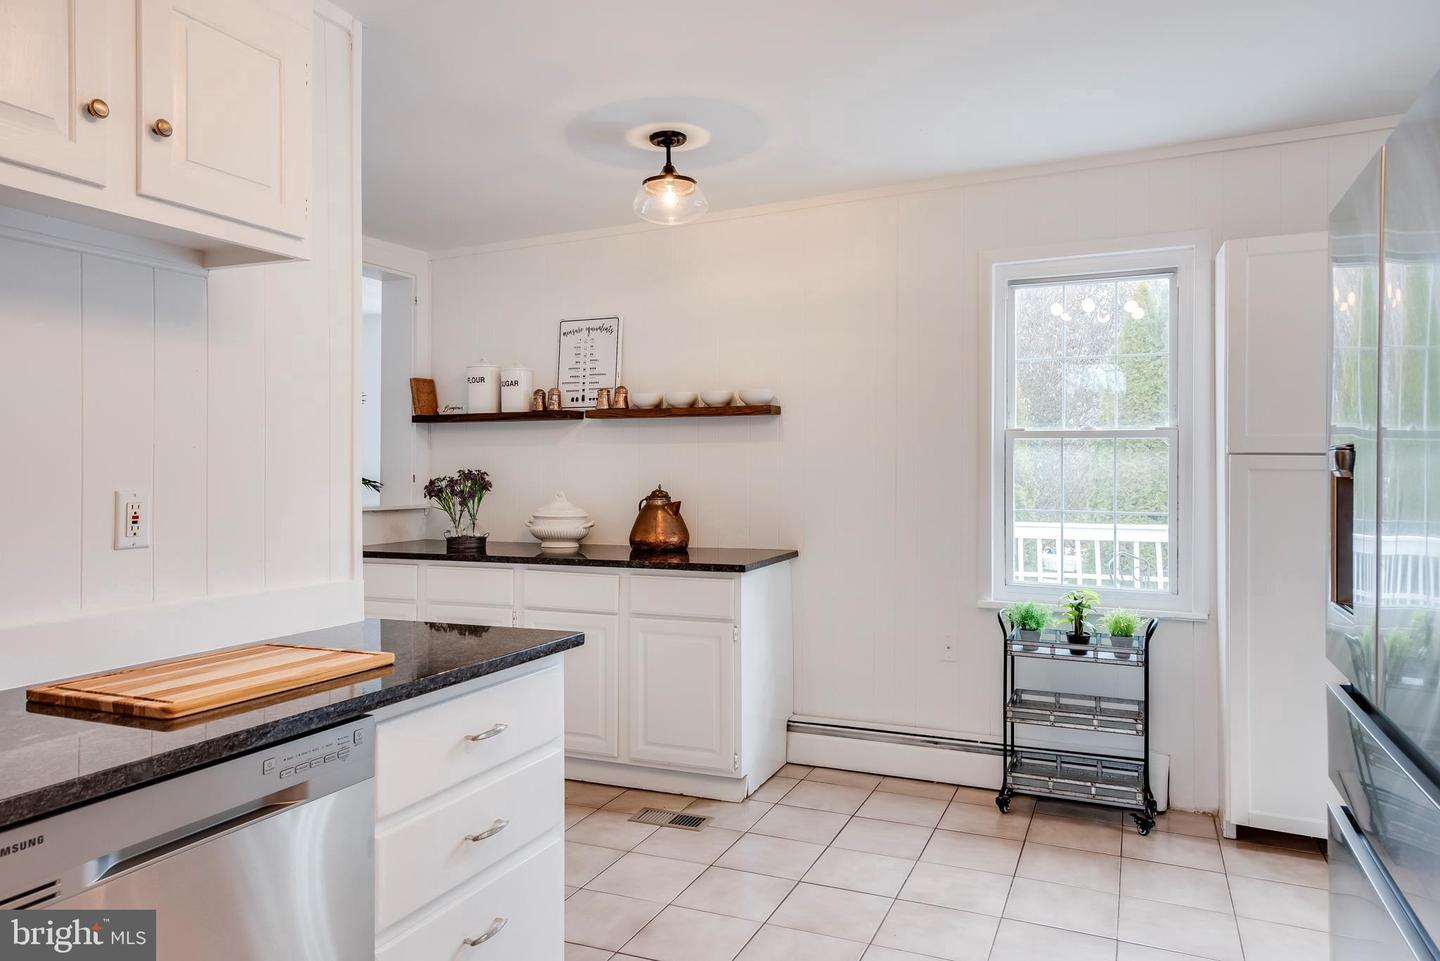 Additional photo for property listing at 1131 Bay Ridge Rd Annapolis, Maryland 21403 United States